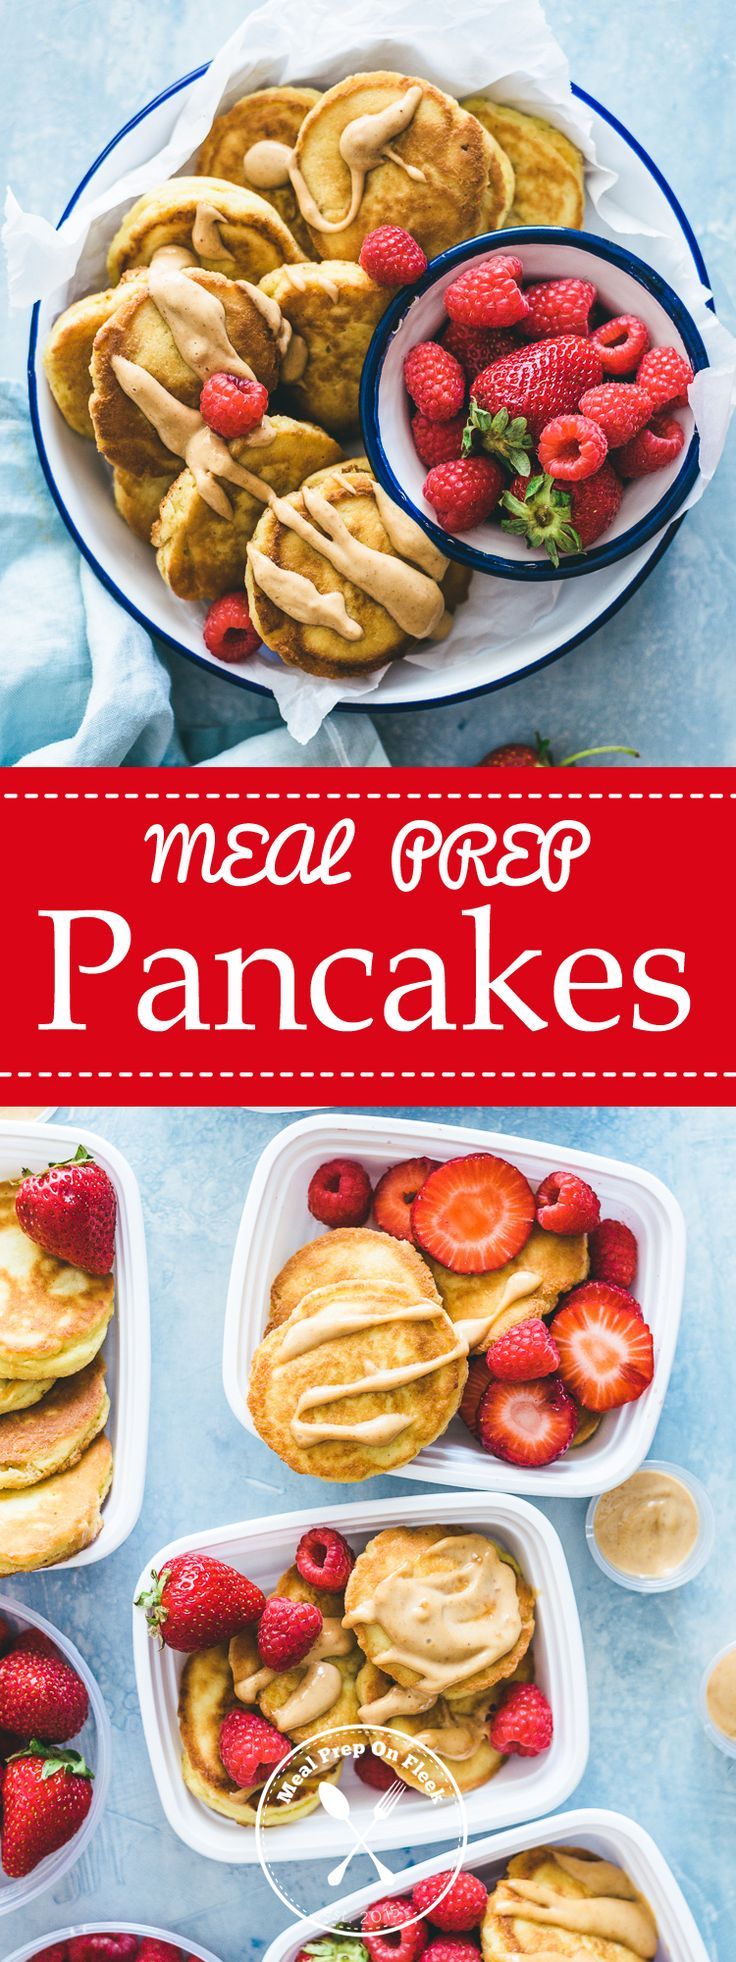 Yes, You CAN Meal Prep Pancakes!  Didn't think you could meal prep pancakes? Well, we are here to show you that you can! This quick, paleo friendly meal is loaded with fiber and healthy fats to keep you going all morning long!